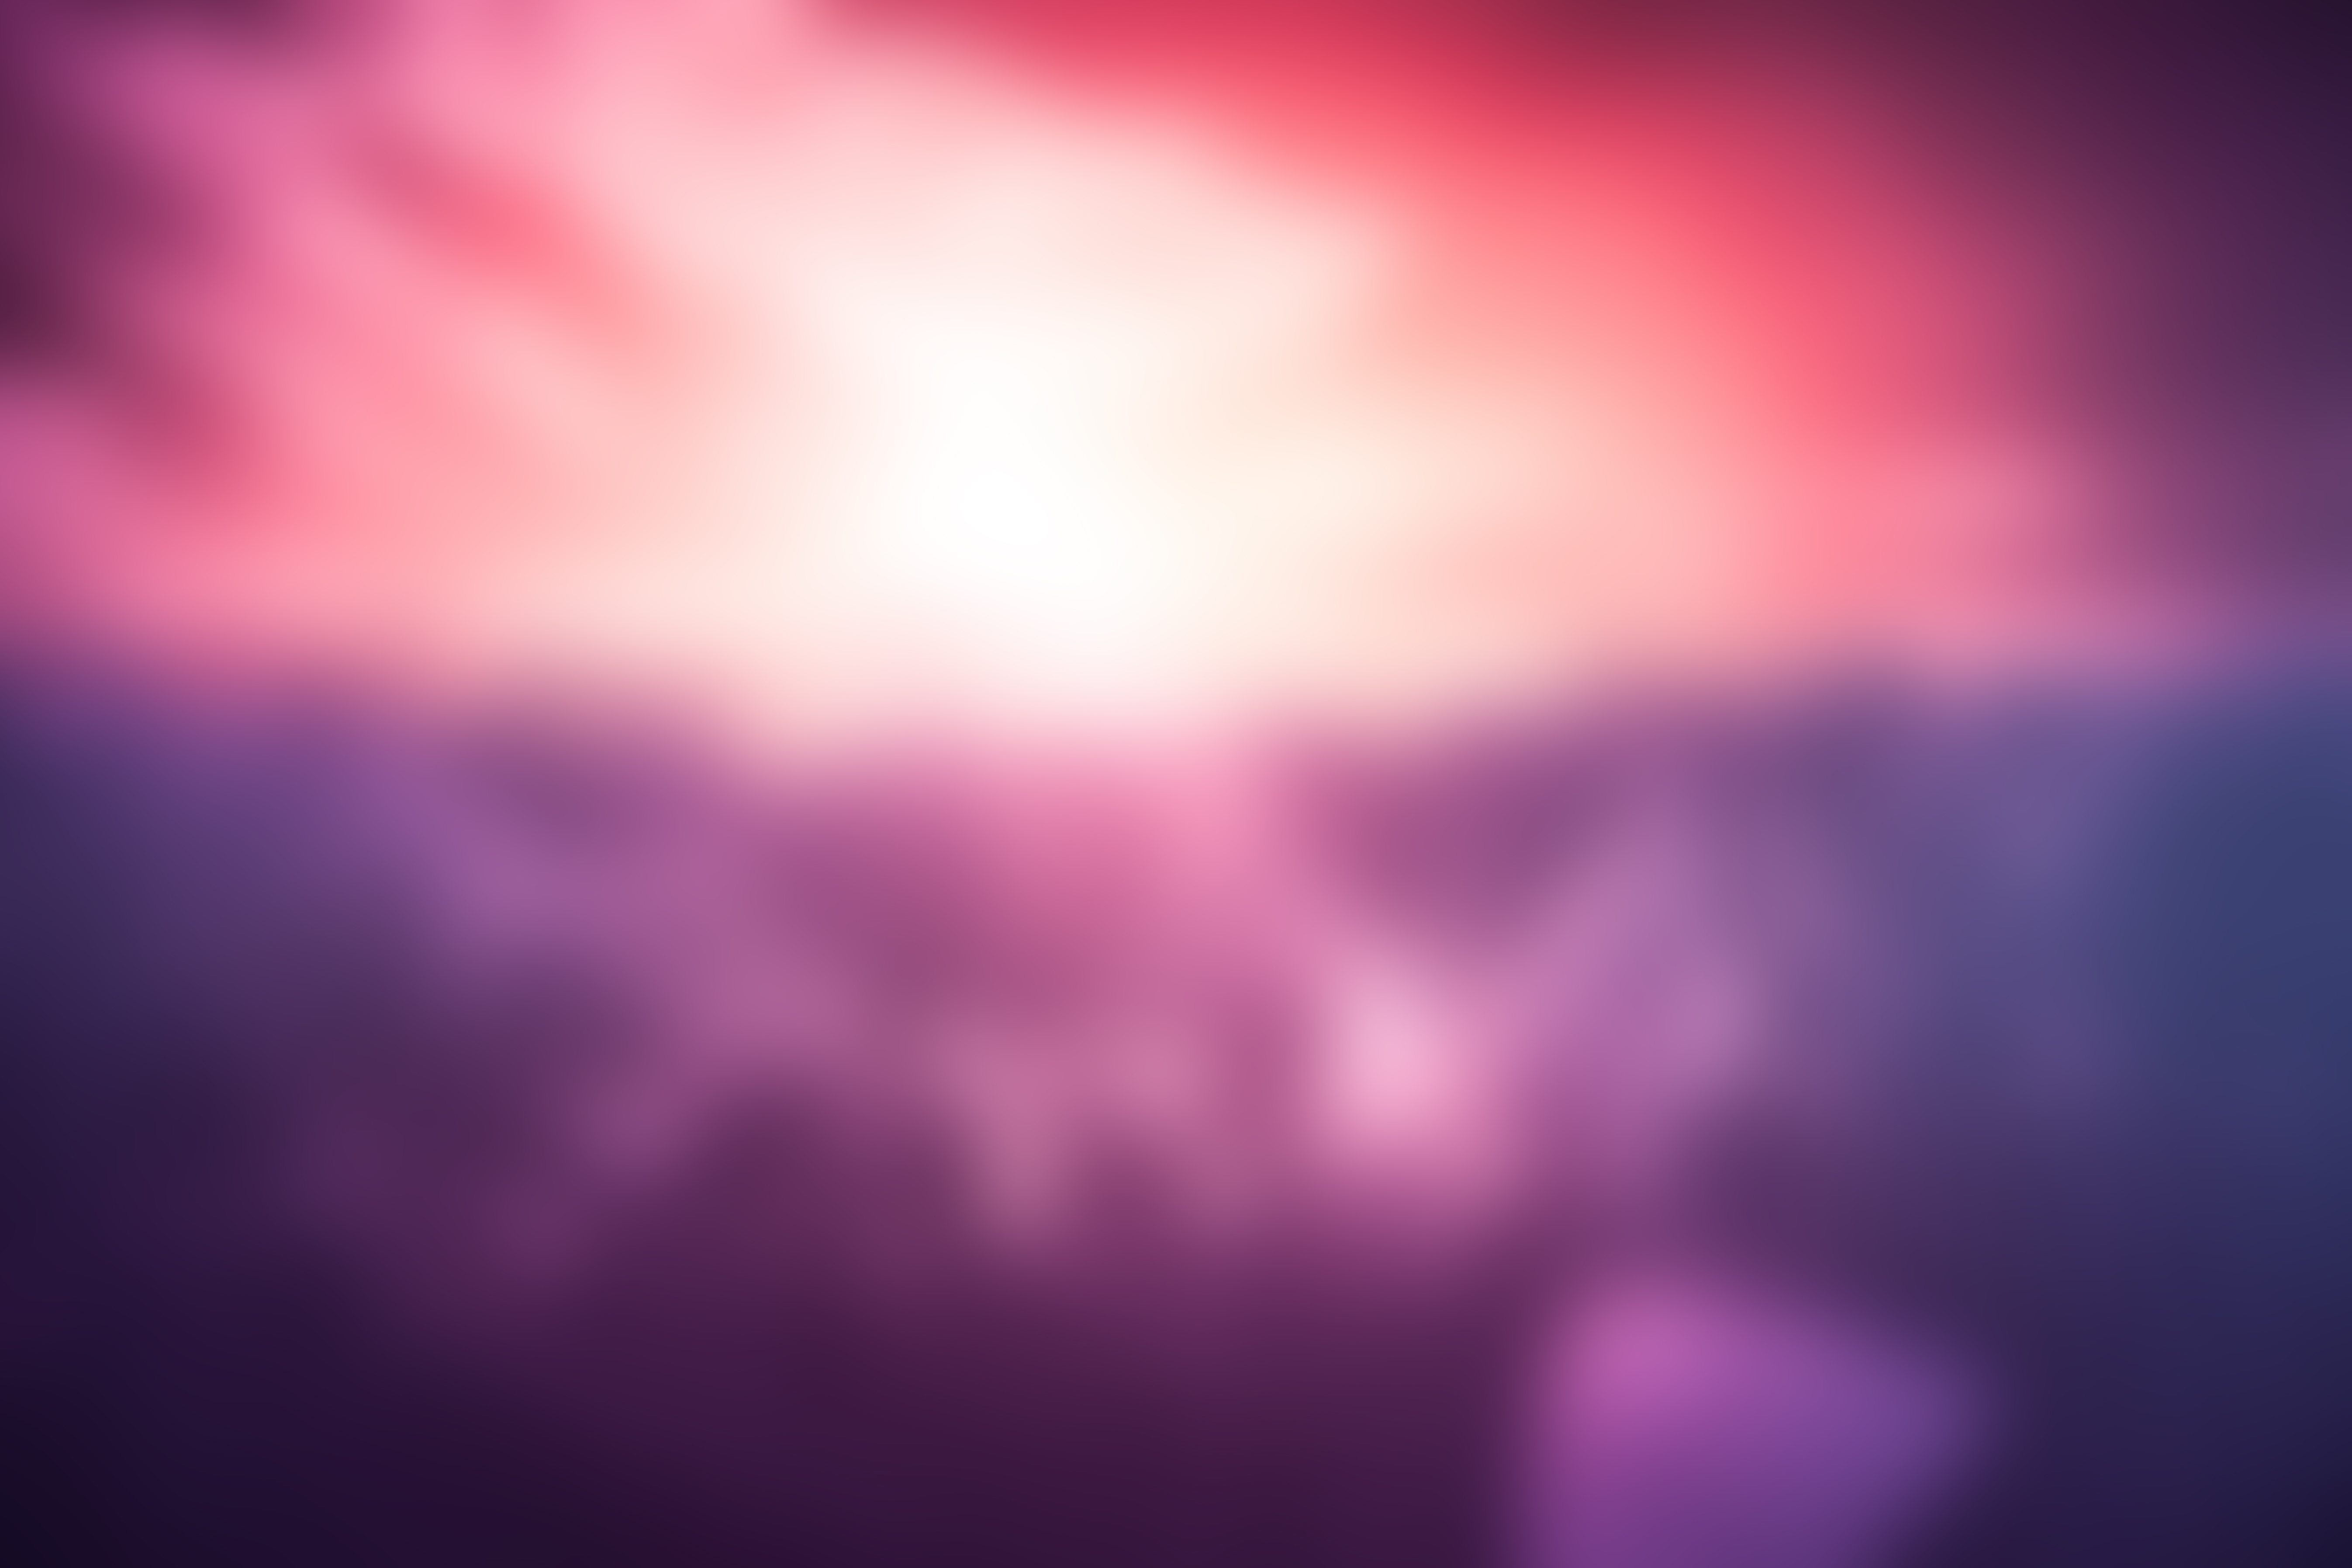 Blur Background, abstract, unfocused, blue, lilac, distorted